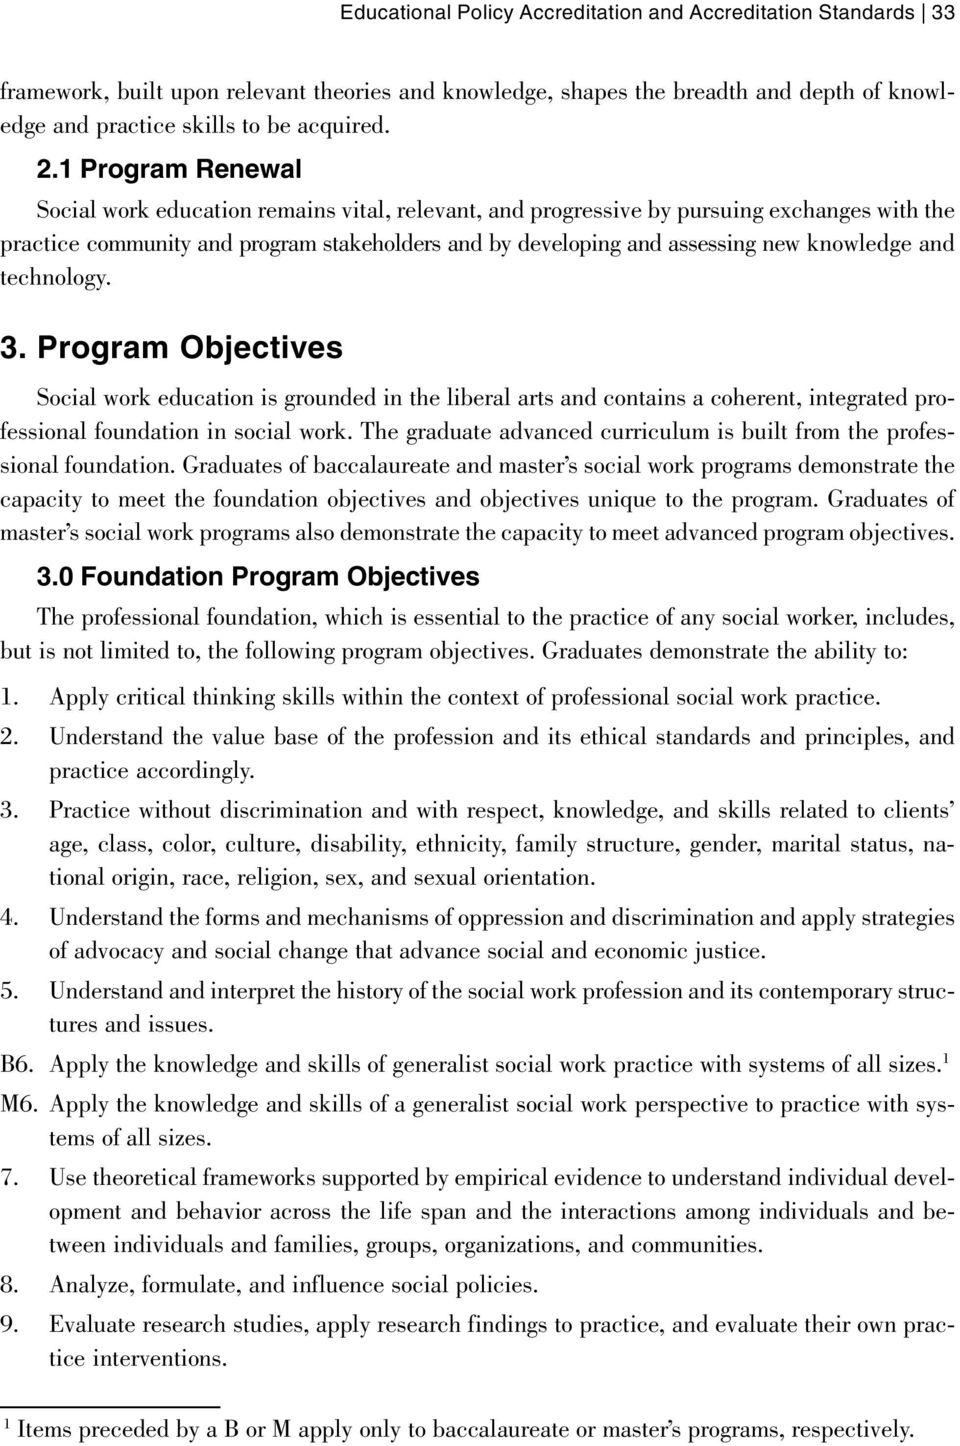 knowledge and technology. 3. Program Objectives Social work education is grounded in the liberal arts and contains a coherent, integrated professional foundation in social work.